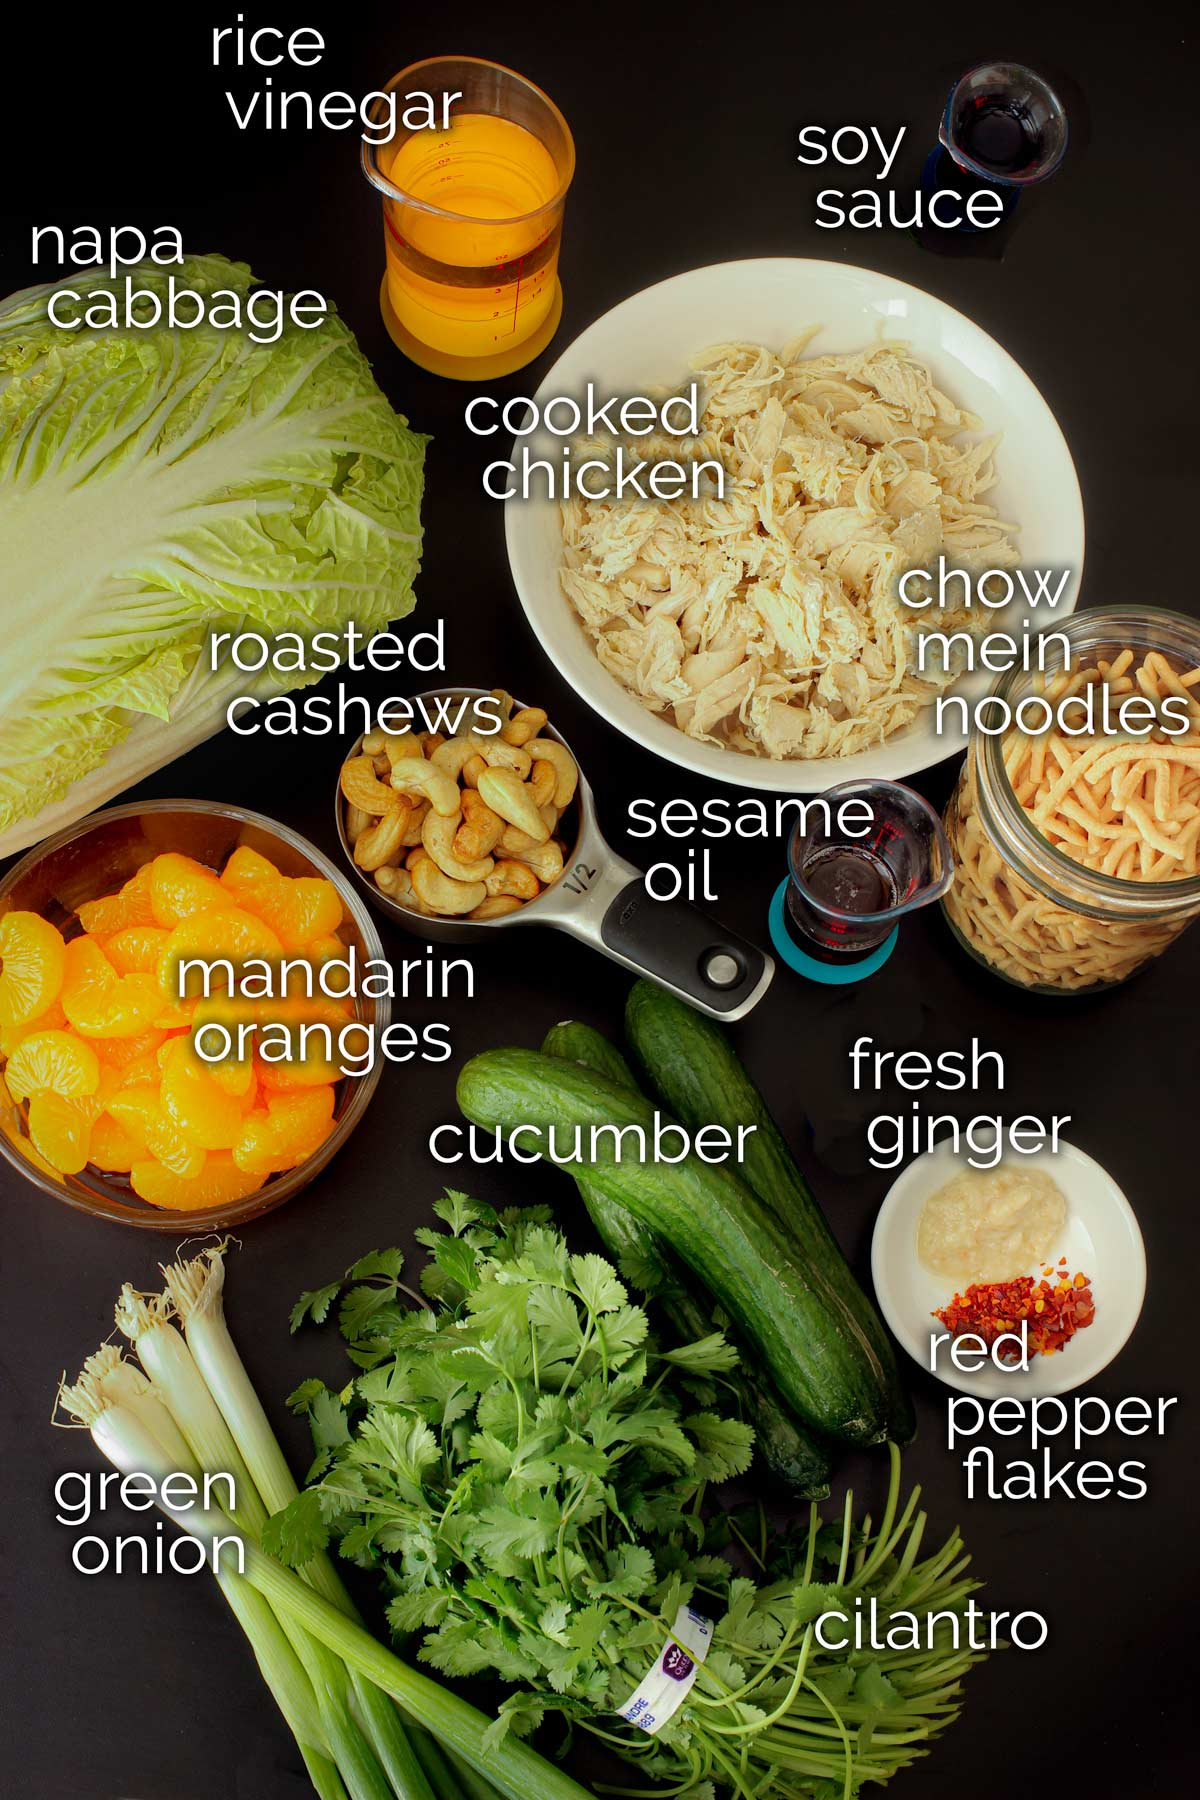 ingredients for asian cabbage salad laid out on black table top.